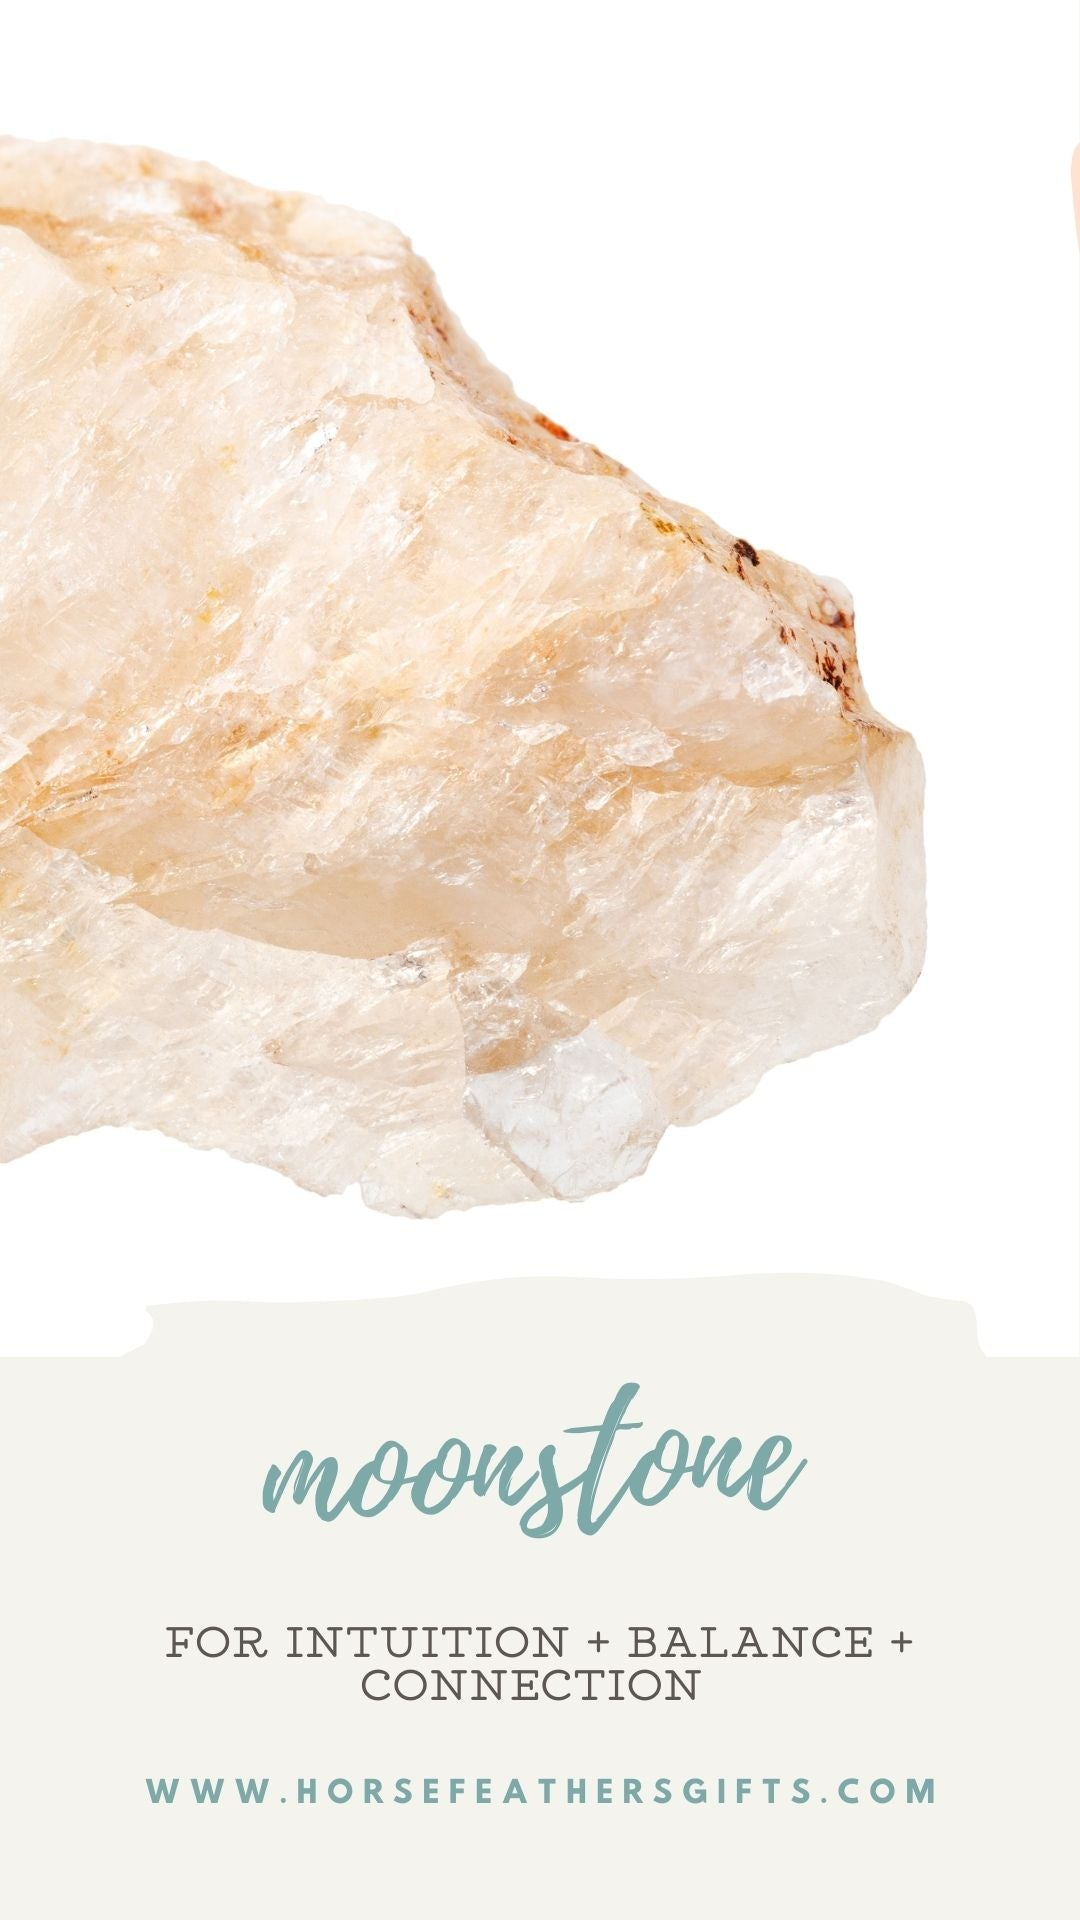 moonstone meaning and properties